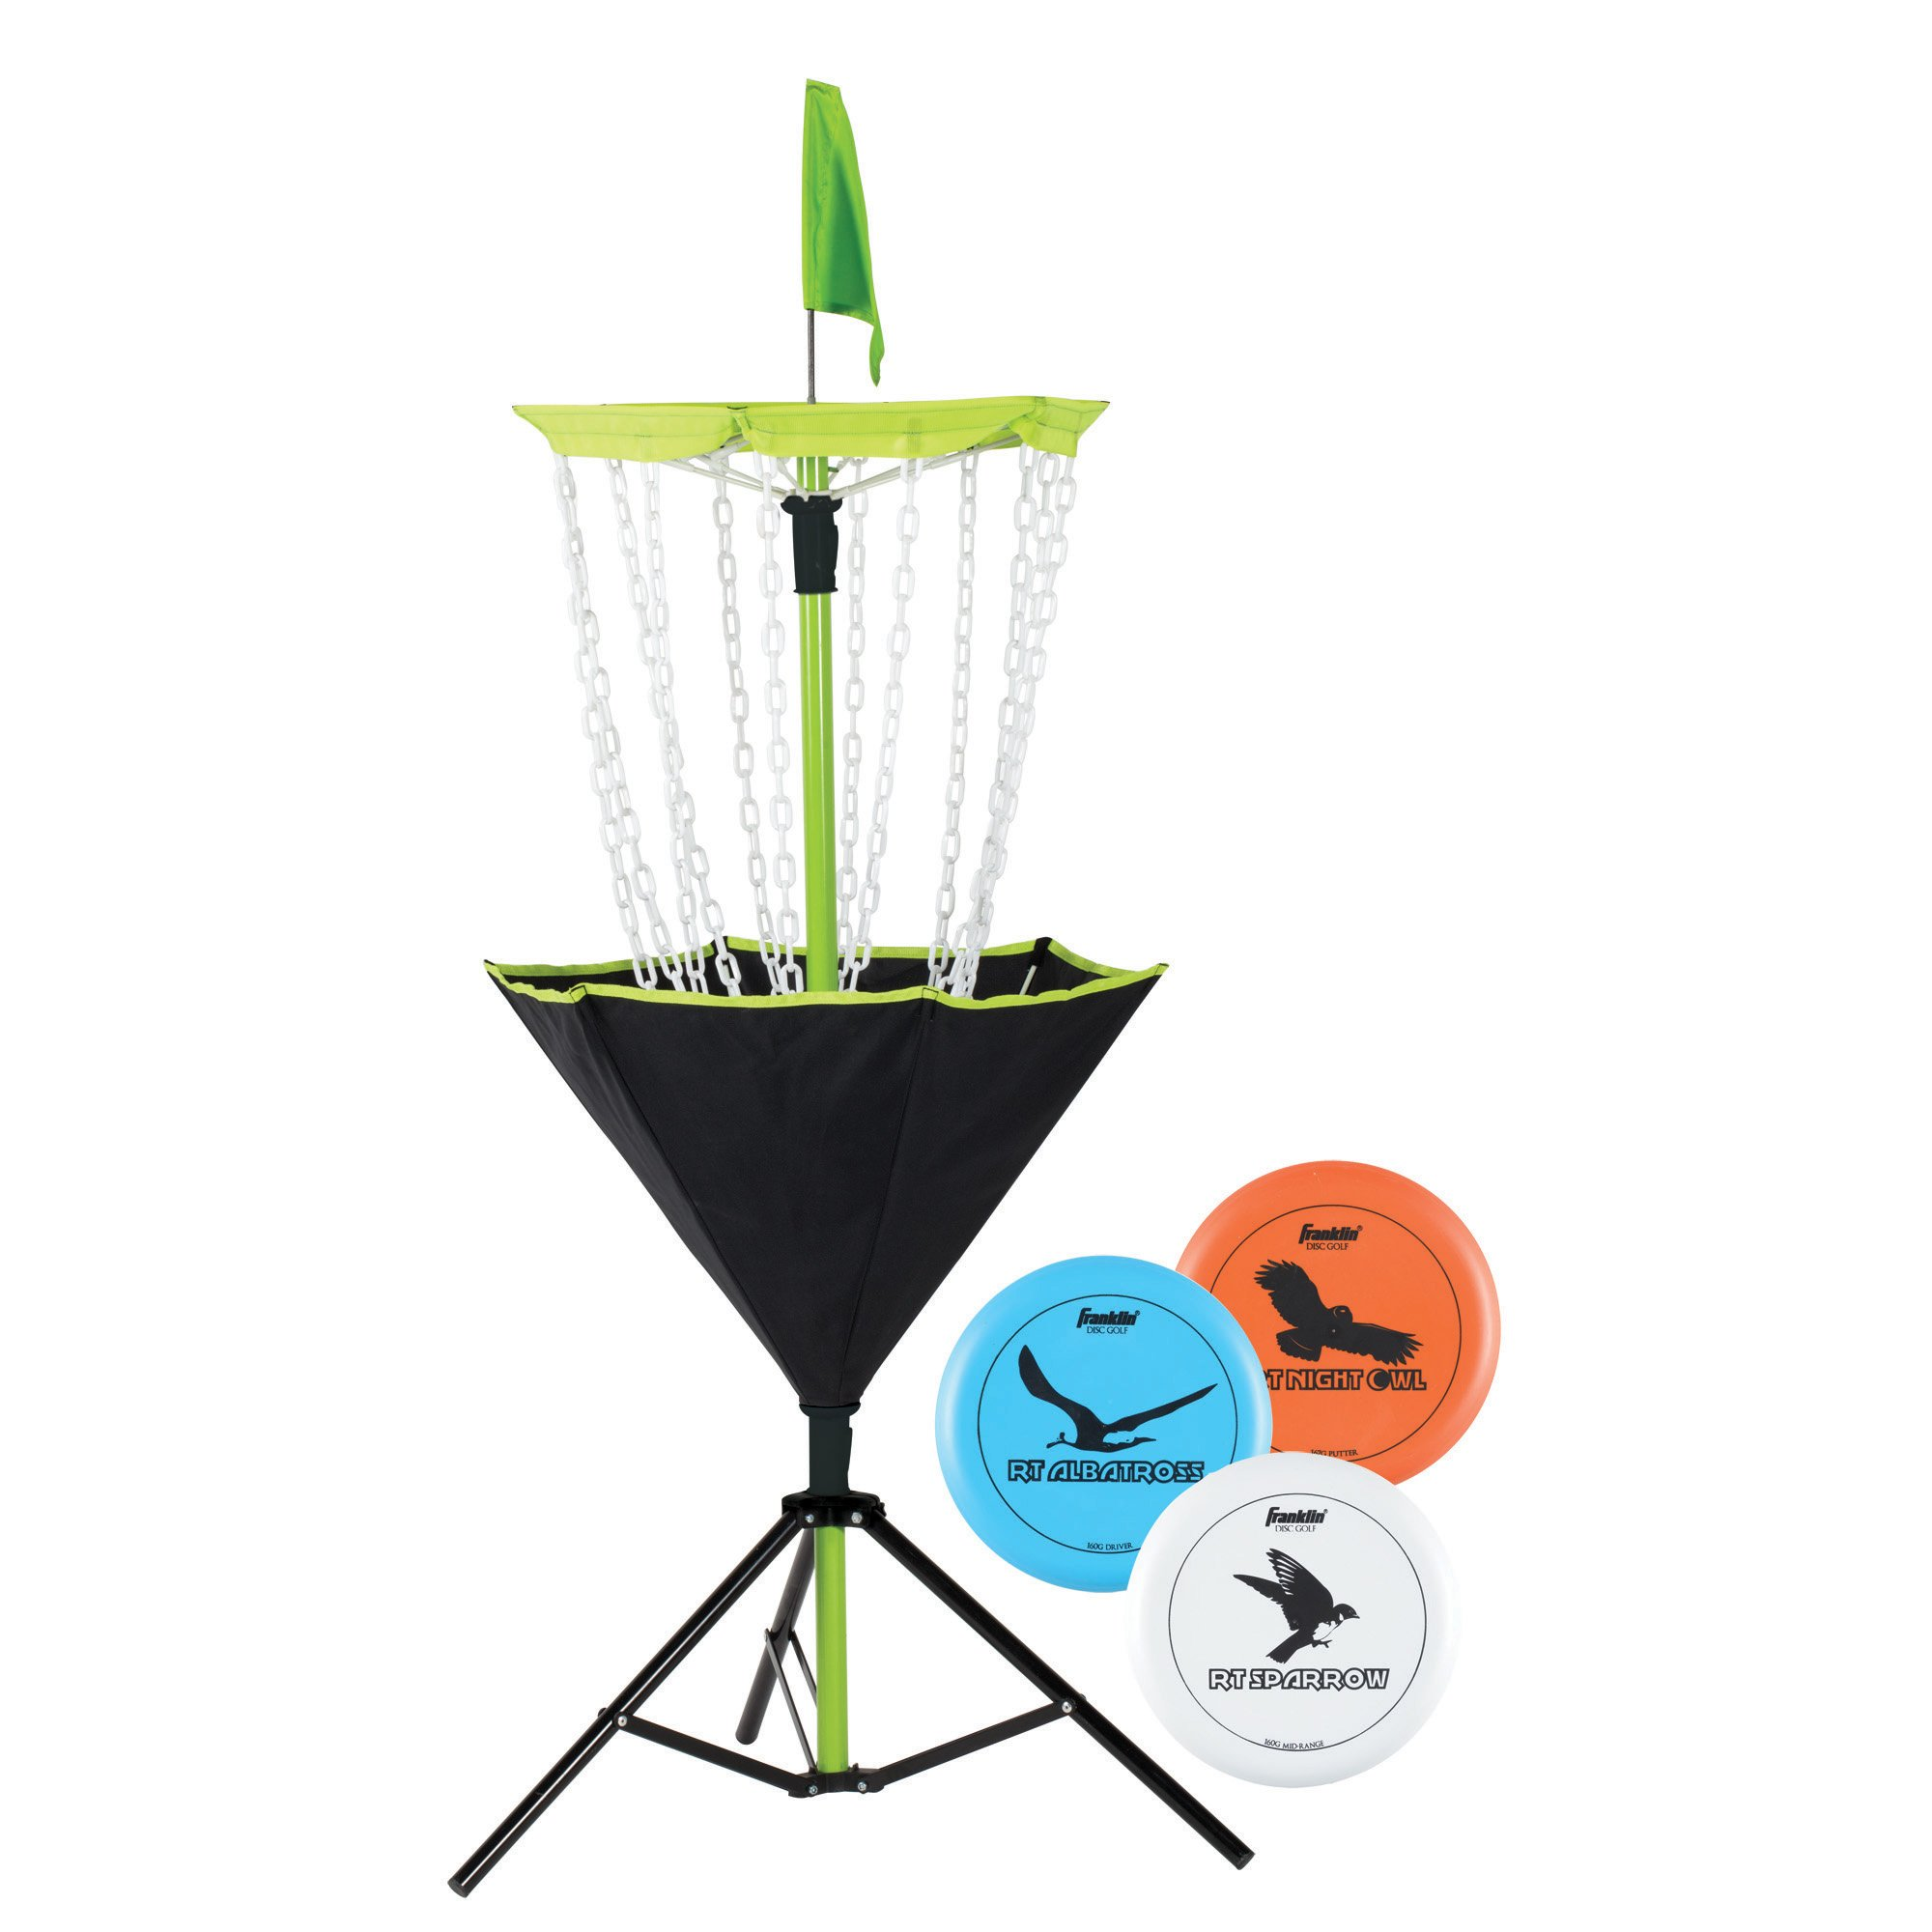 Franklin Sports Disc Golf Target Set - Includes Three Golf Discs and Carrying Bag by Franklin Sports